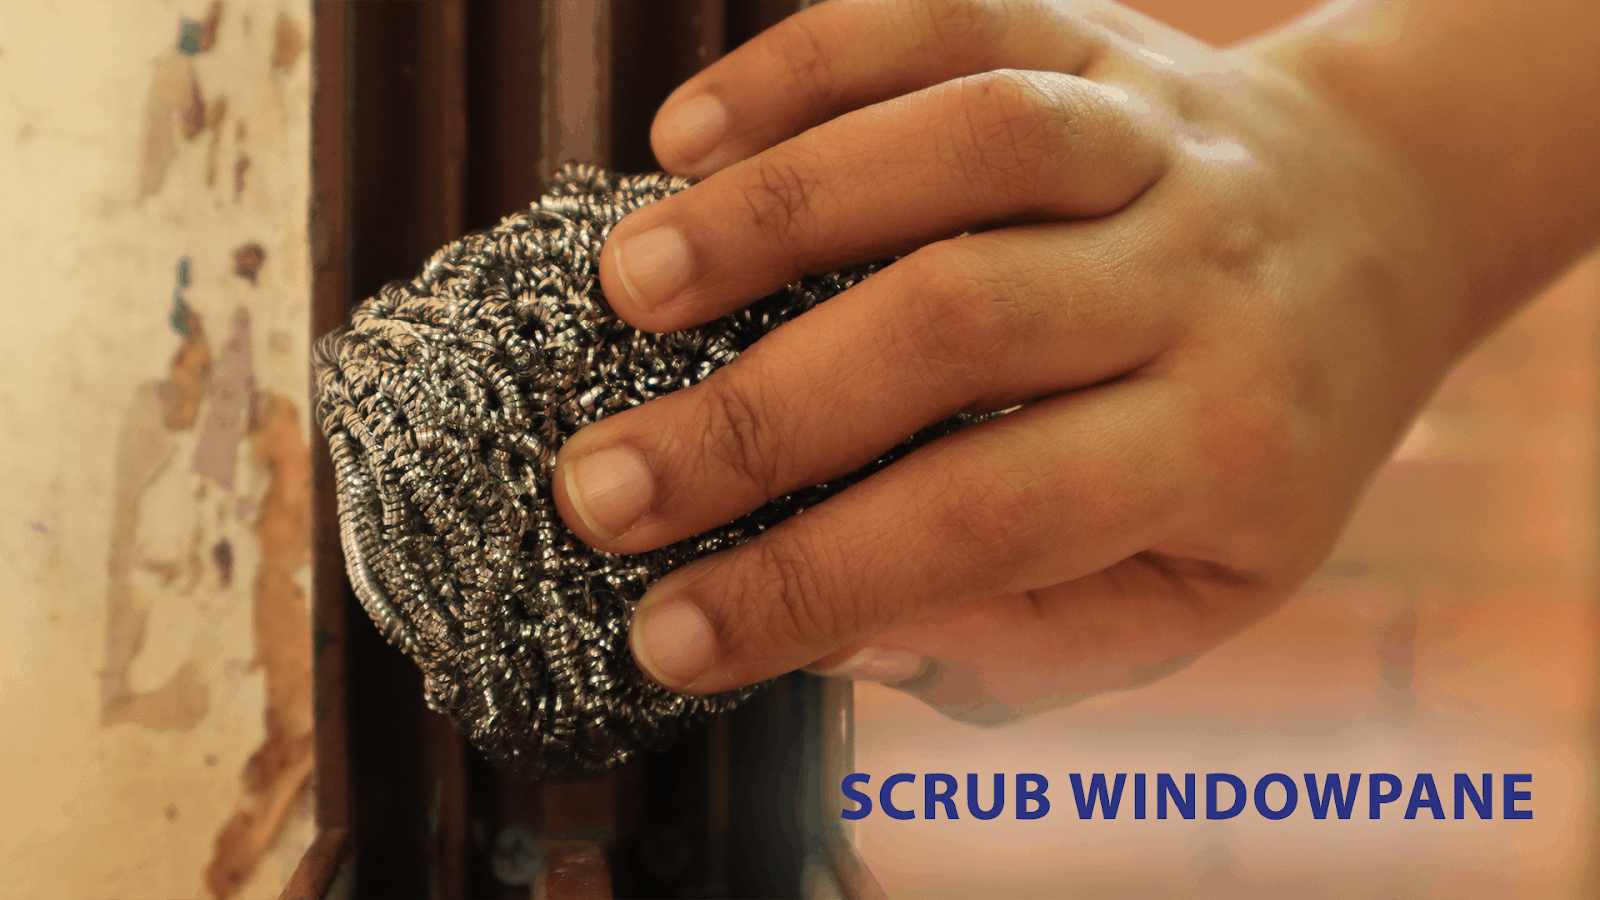 A simple how-to for removing dirt from a windowpane